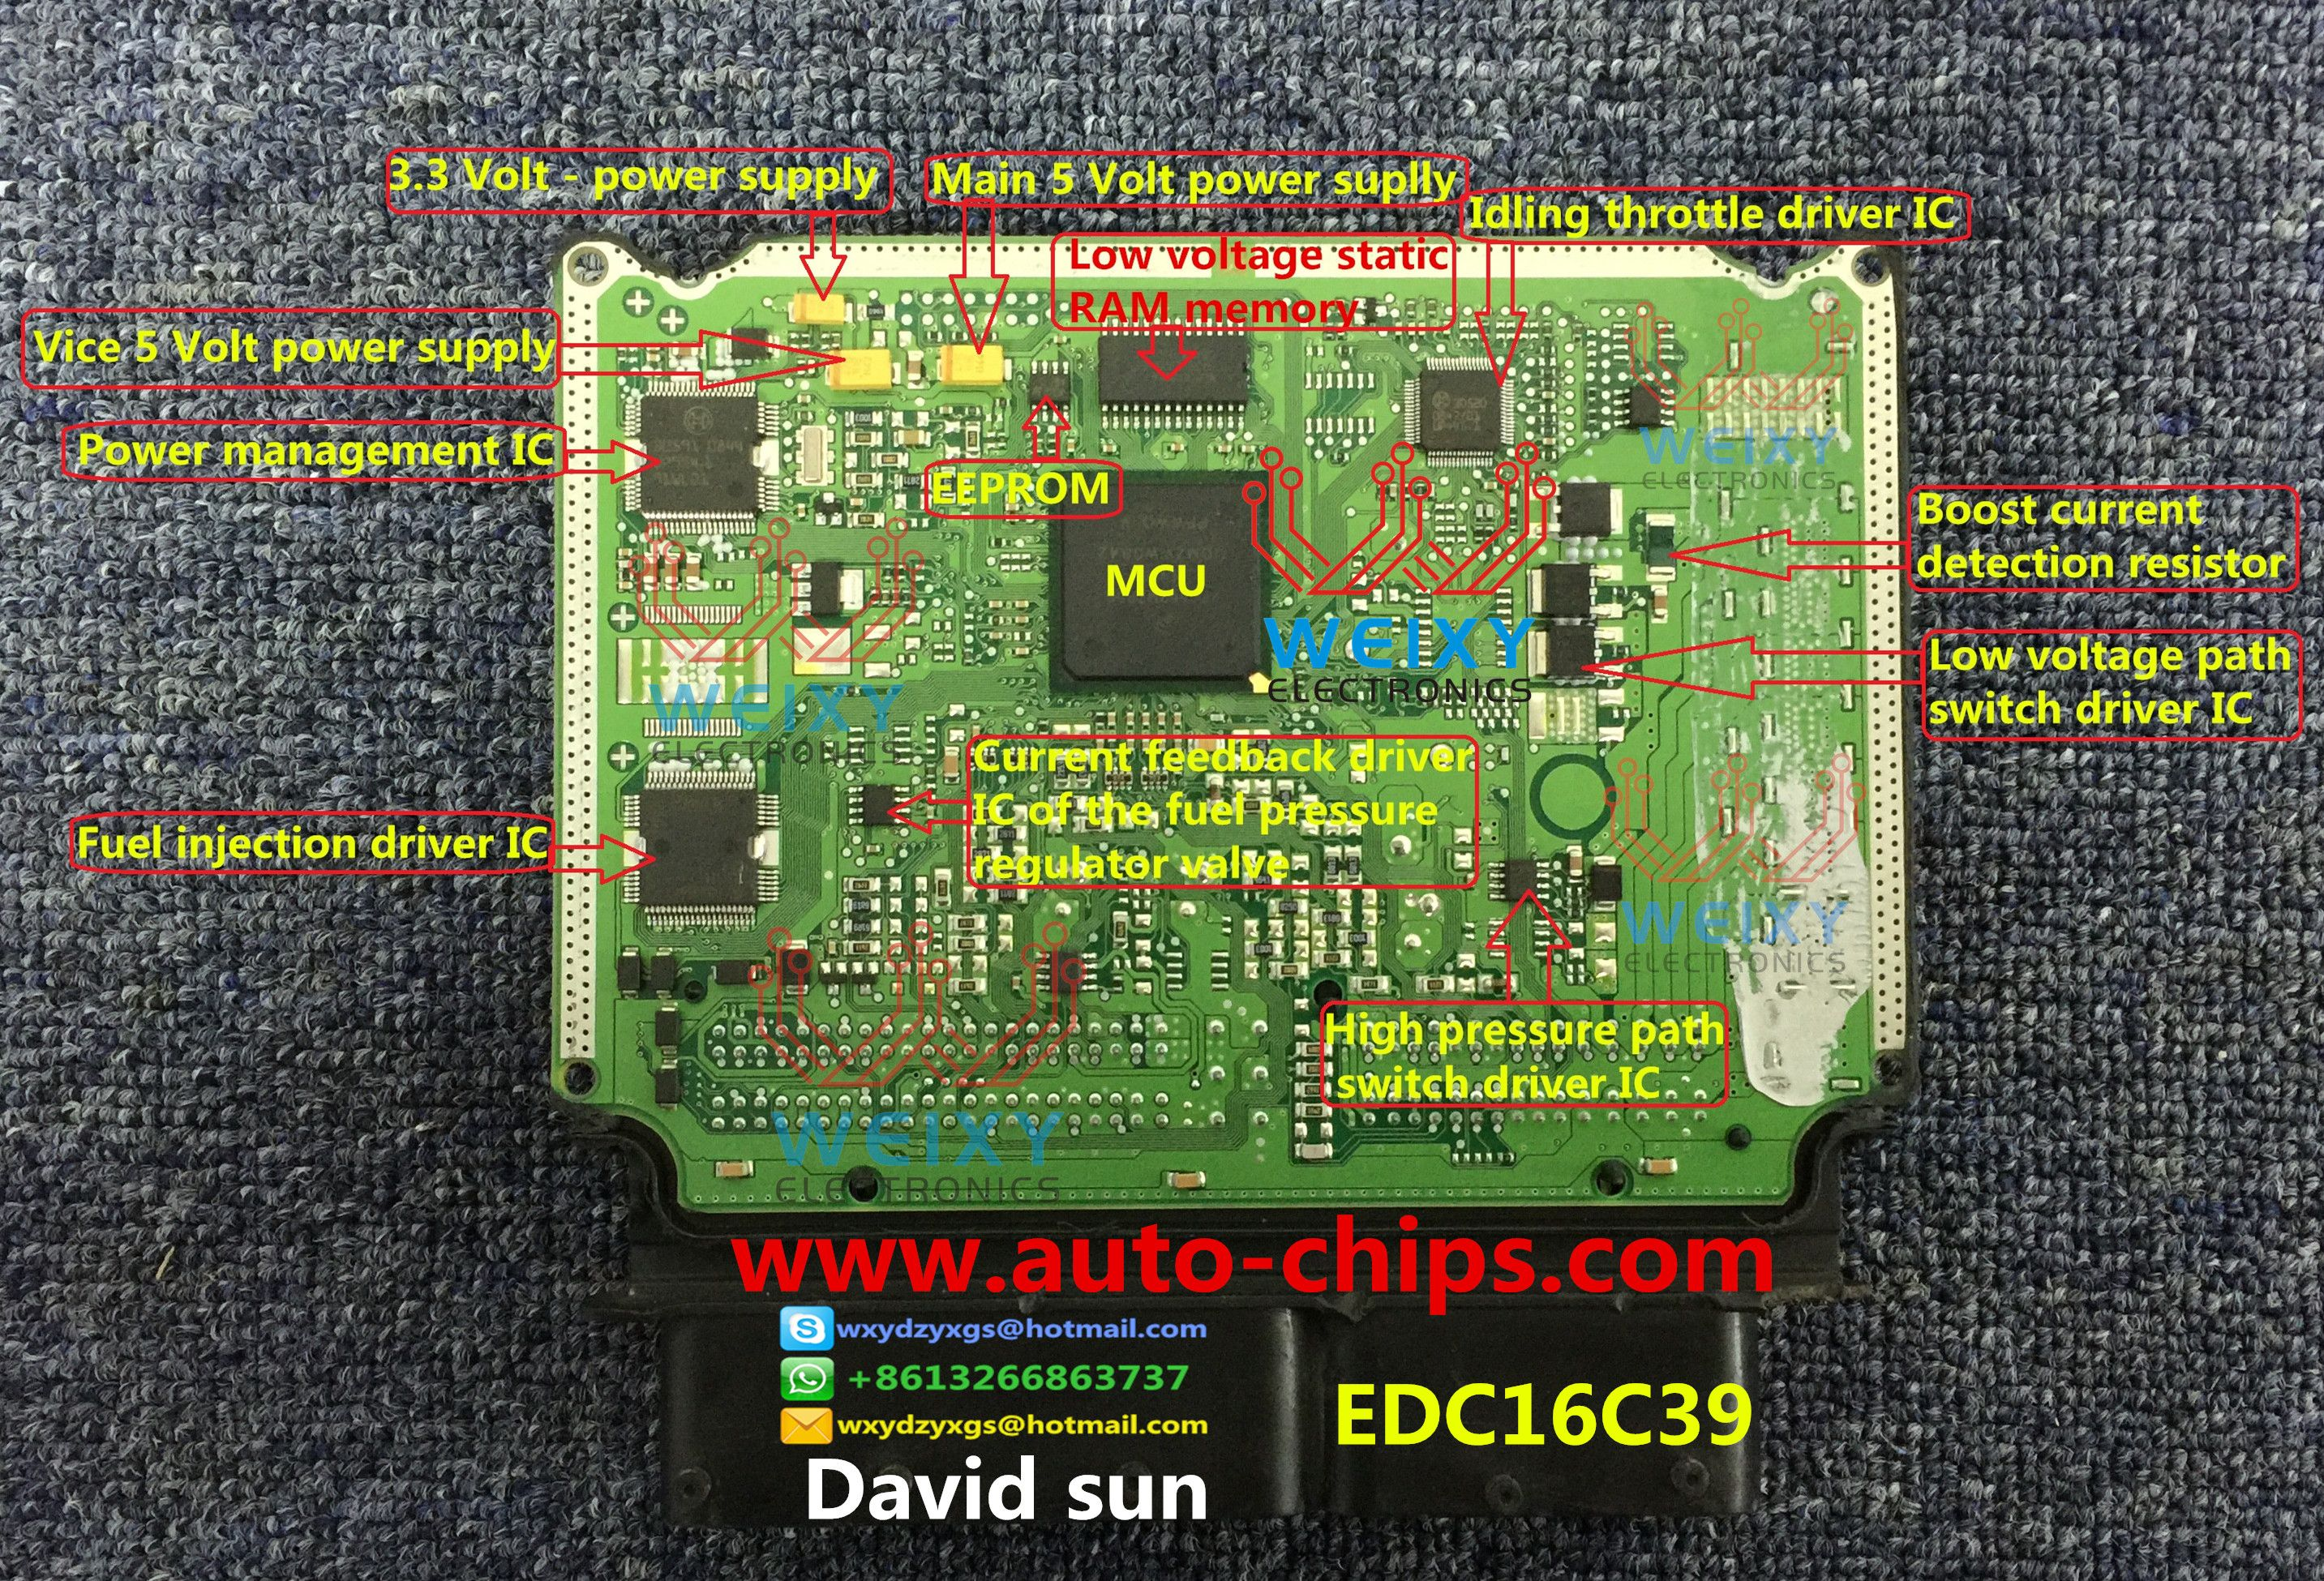 medium resolution of the inner board functional diagram for edc16c39 www auto chips com